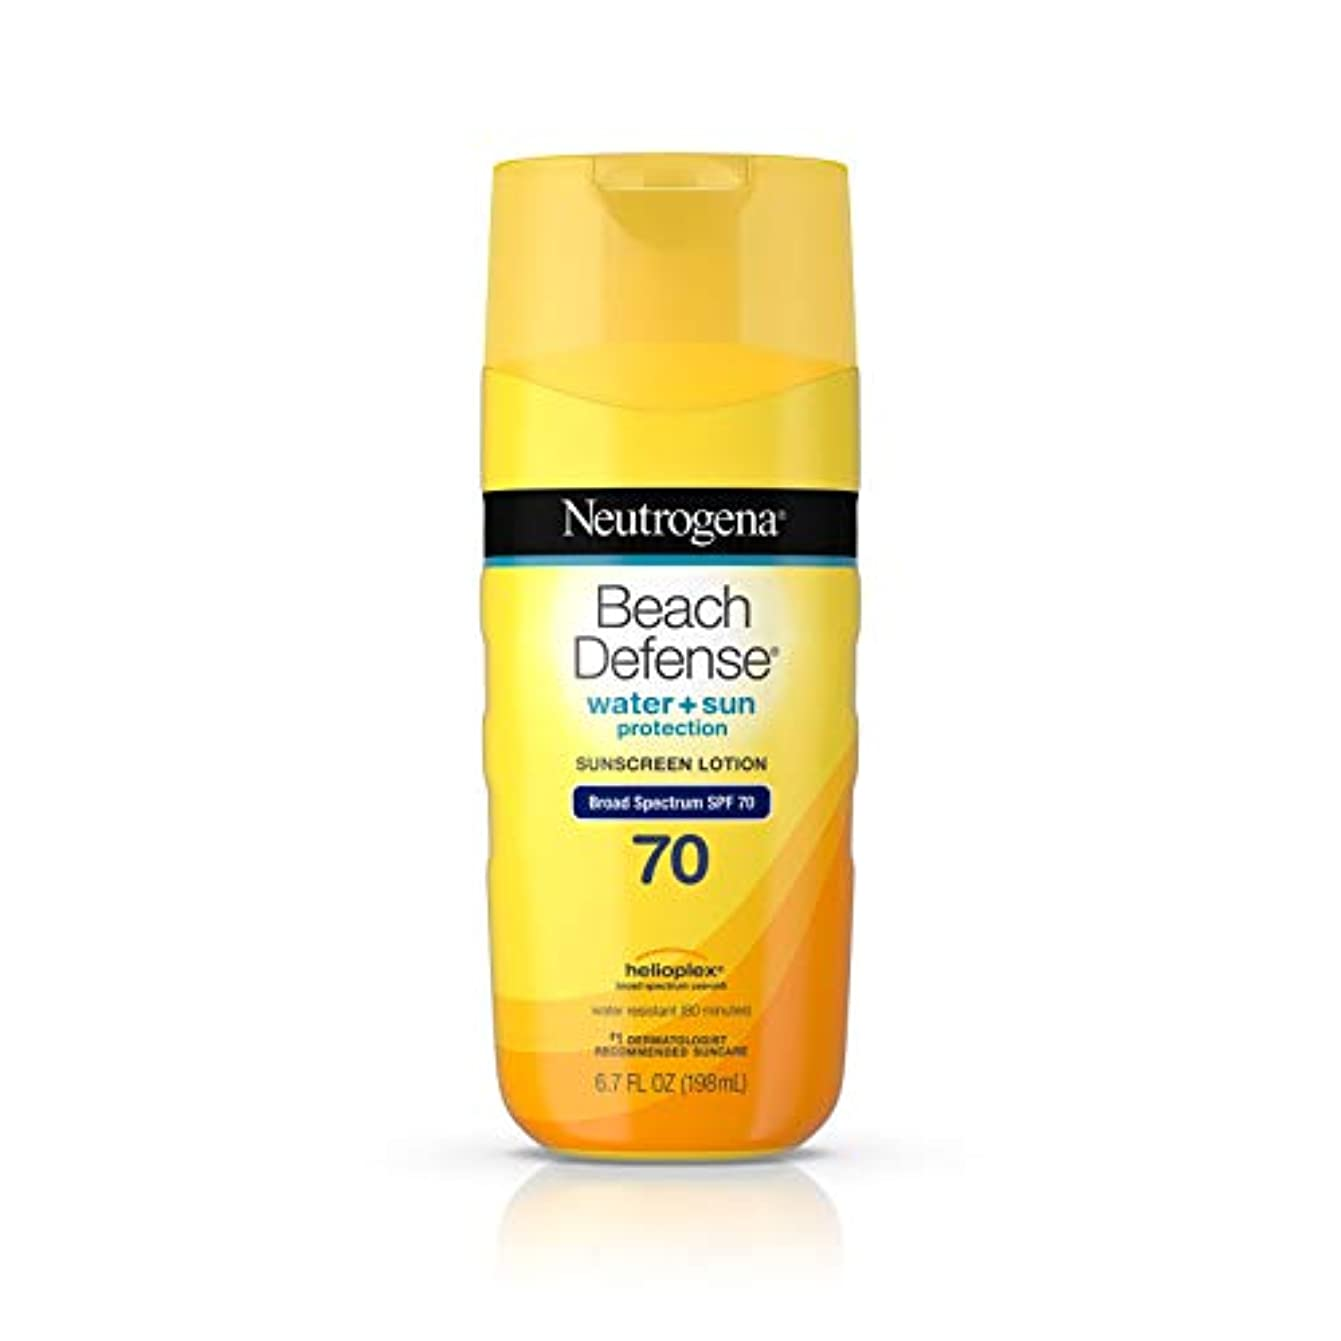 構造的独裁批判海外直送品Neutrogena Neutrogena Beach Defense Lotion SPF 70, 6.7 oz